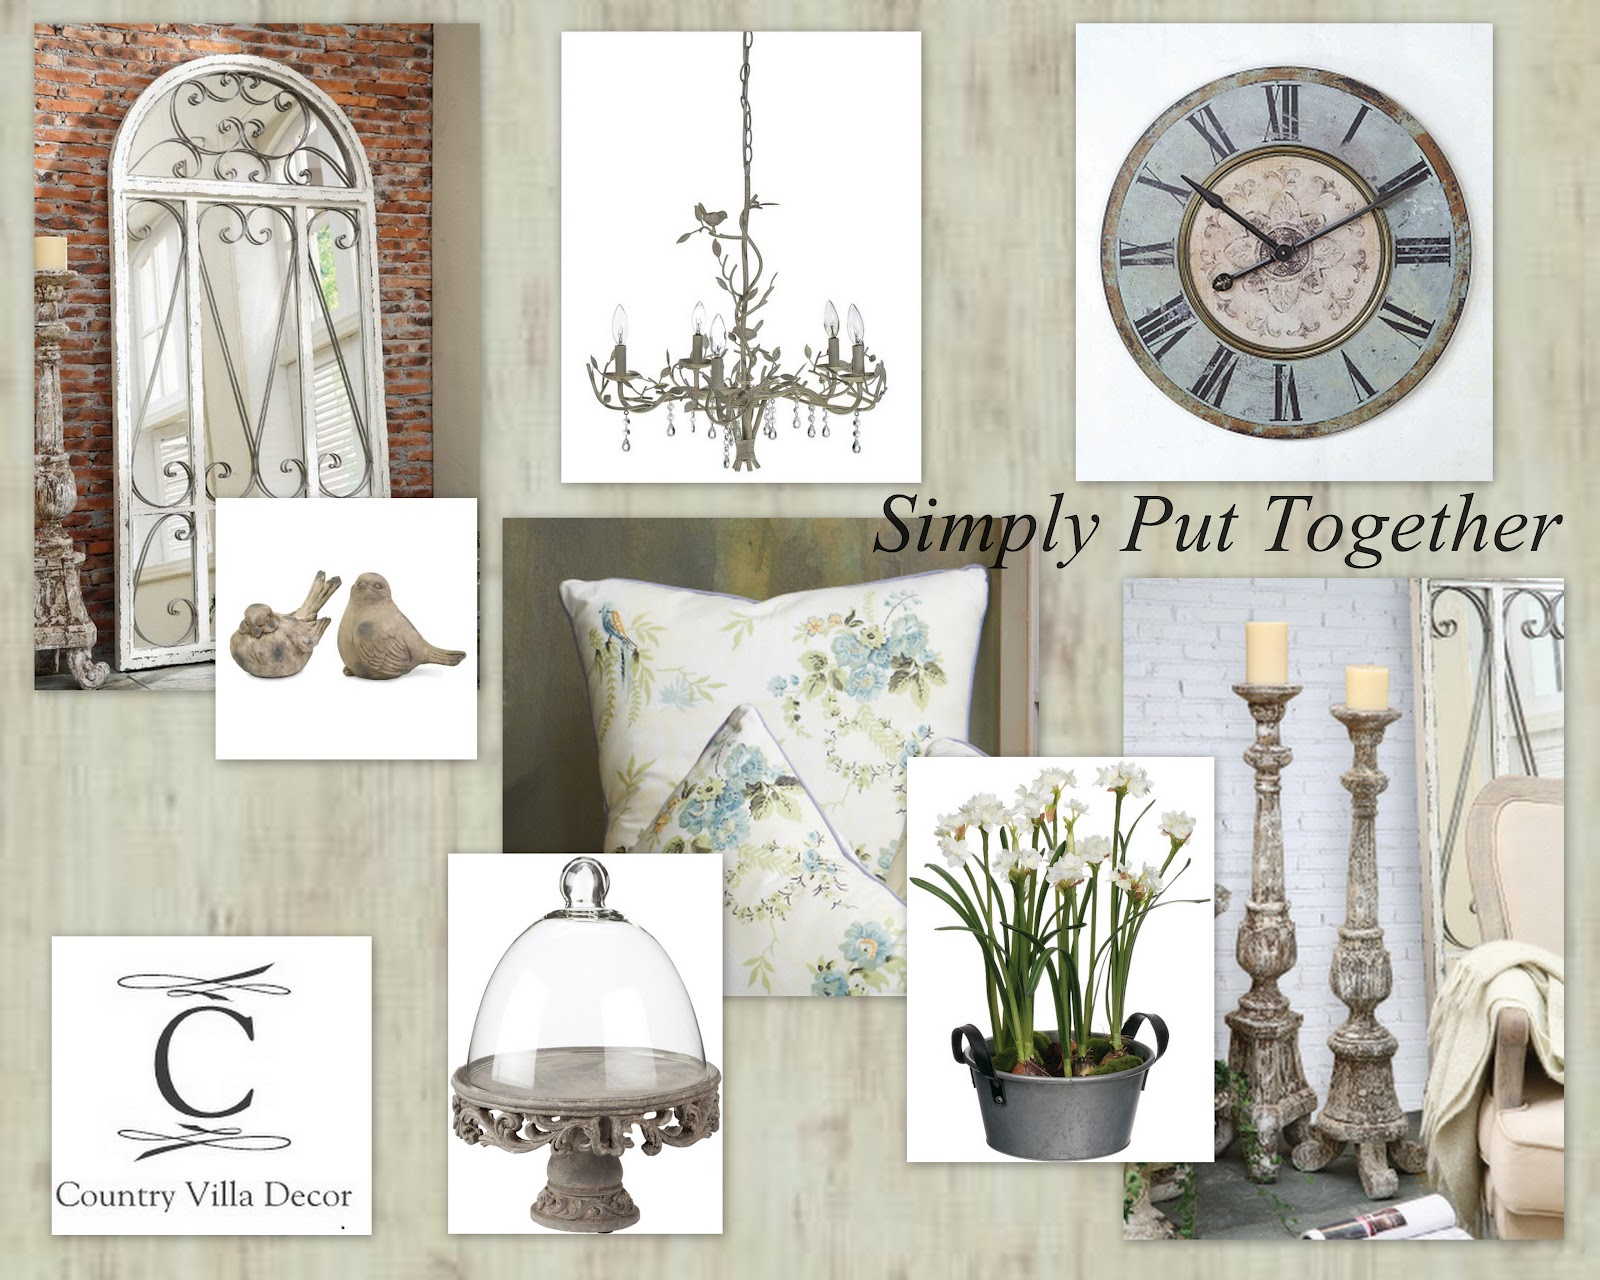 French Country Cottage Decor Ideas title=